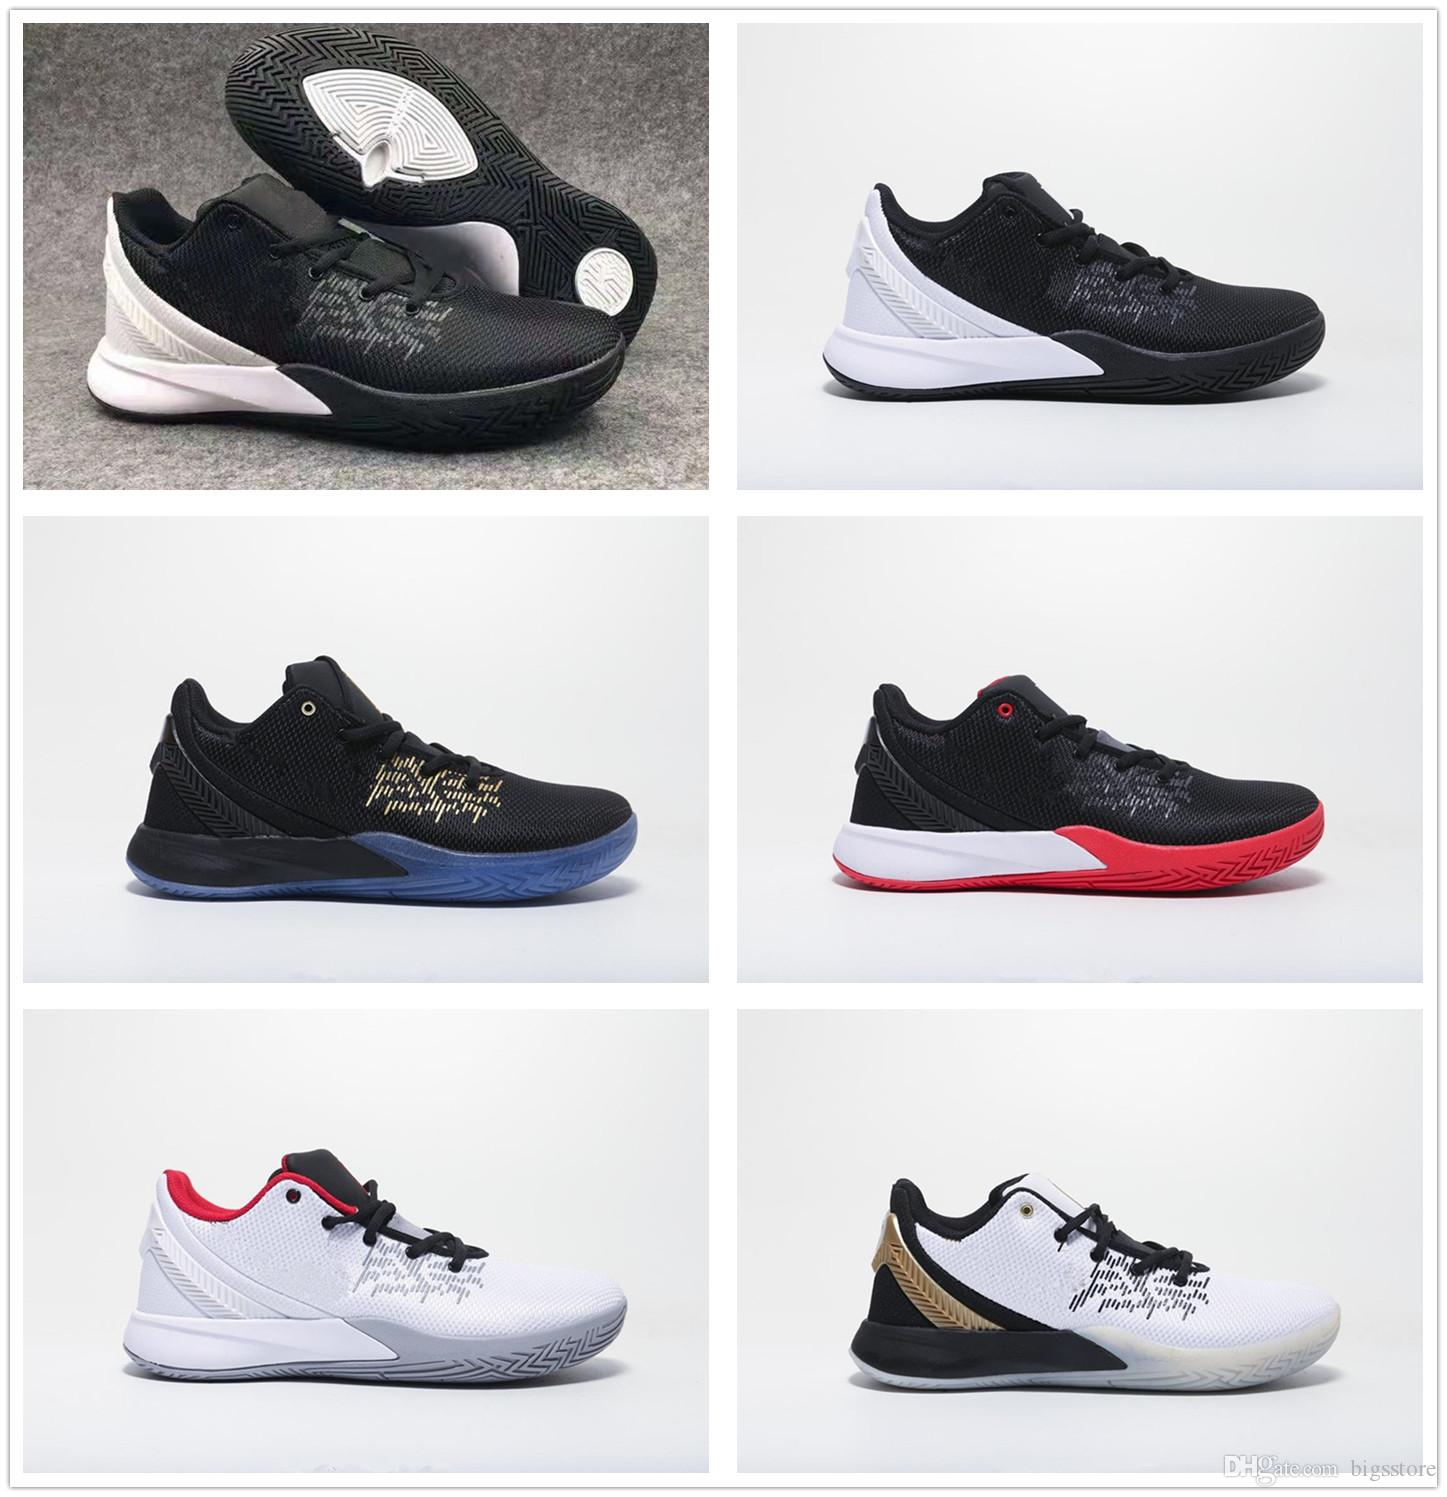 quality design 8aaad 36ec3 New Kyrie Flytrap 2 Shoes Irving 2 for Cheap Sale Sneakers Sports Kyrie  Mens Shoes size us7-us12